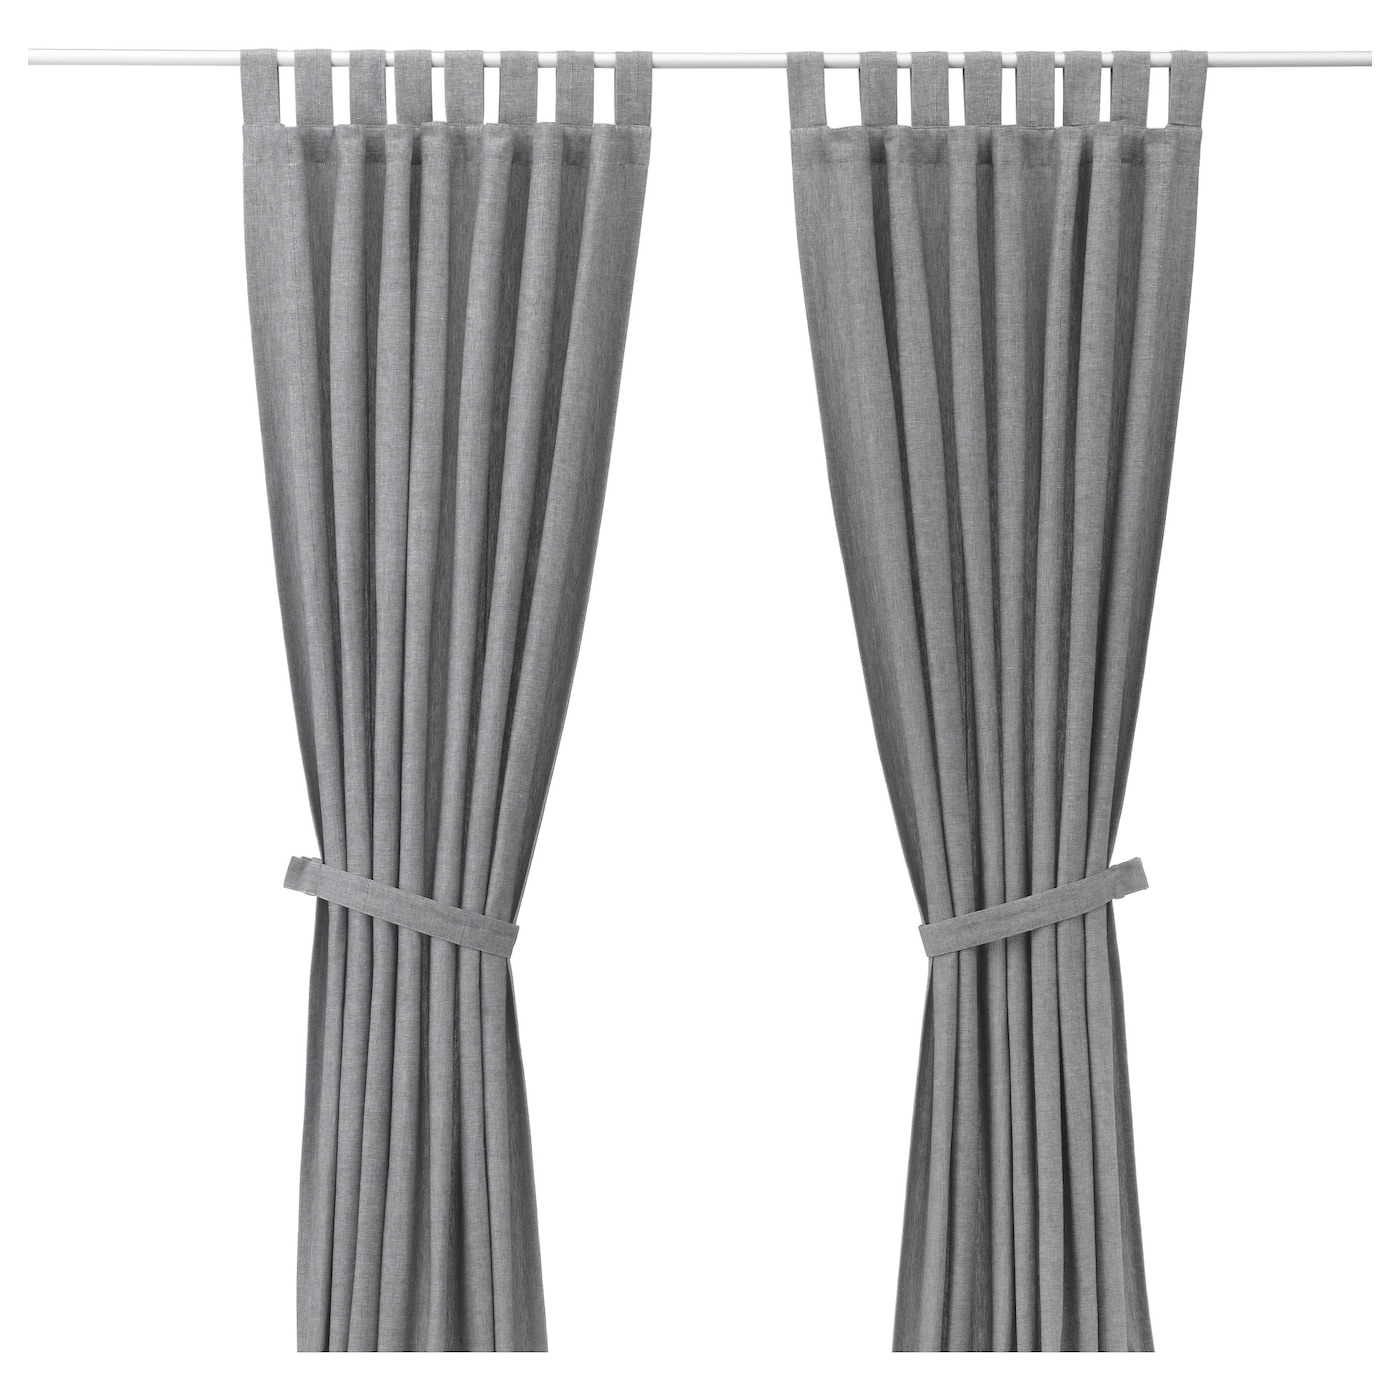 White And Black Bedroom Lenda Curtains With Tie Backs 1 Pair Grey 140x250 Cm Ikea